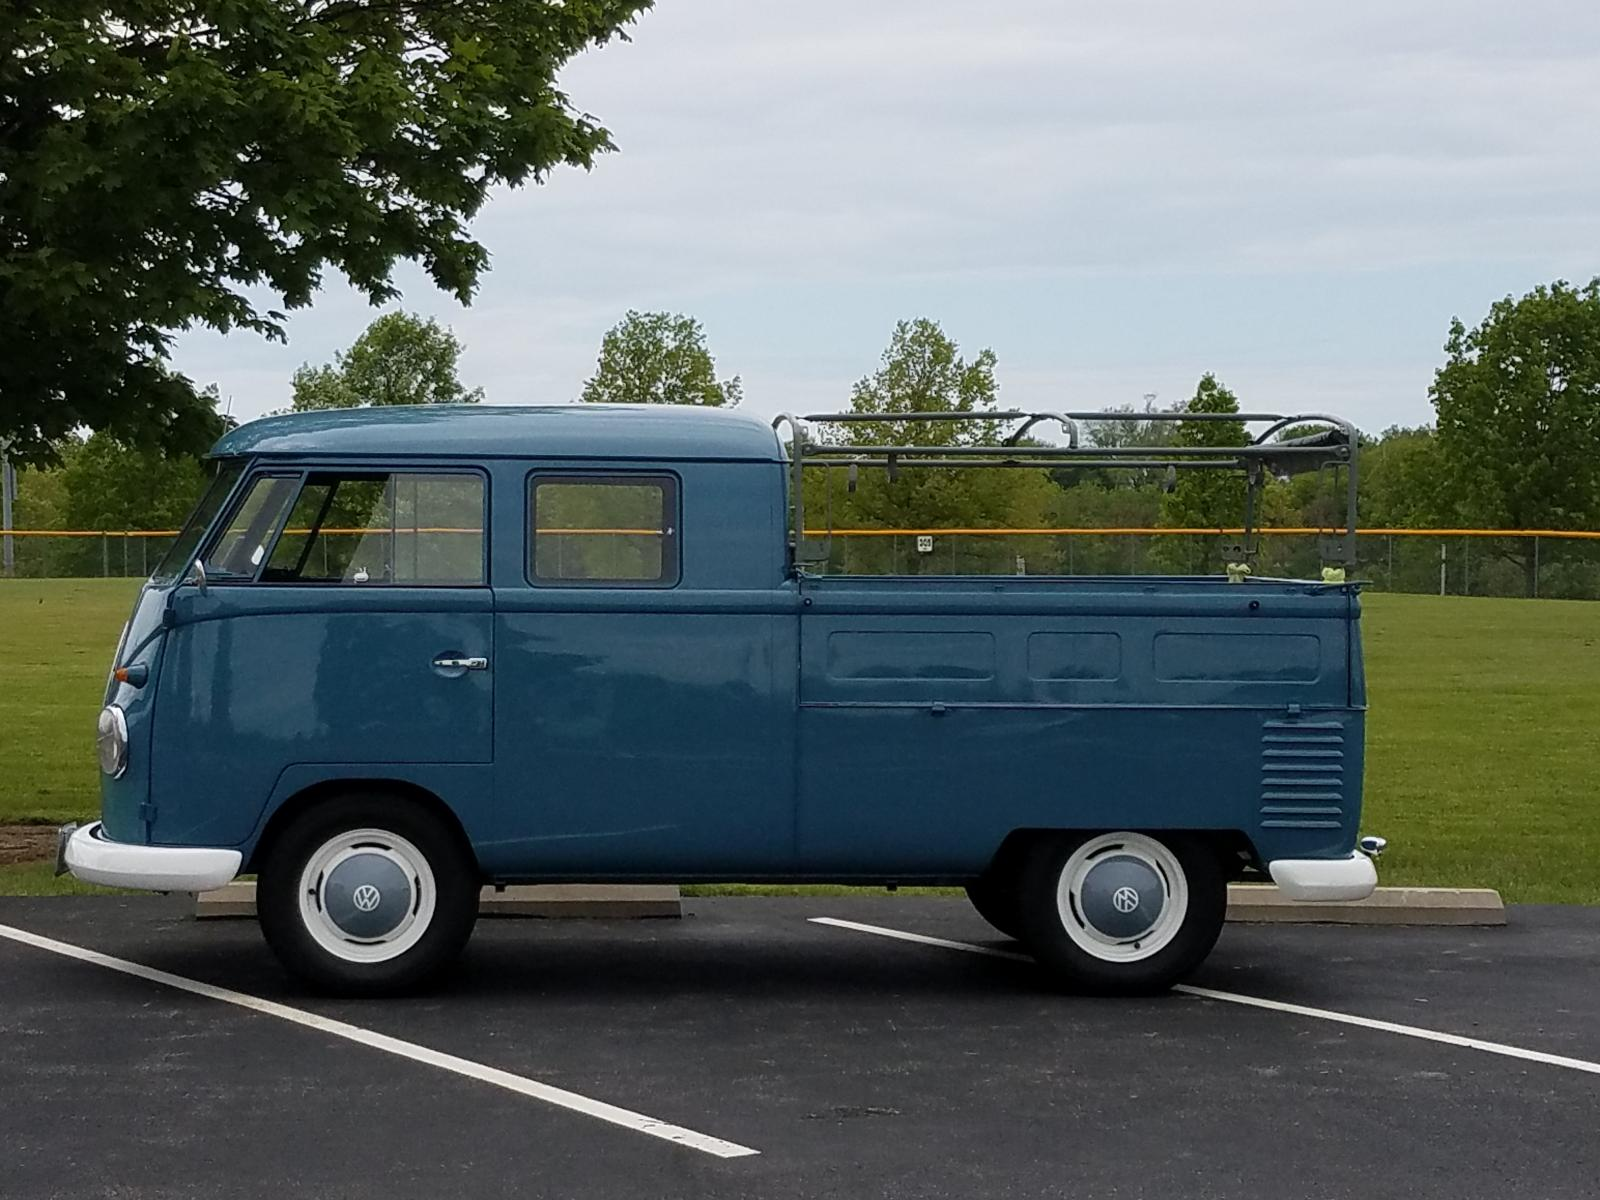 Taking the 1959 Double-Cab out for a Spring drive...